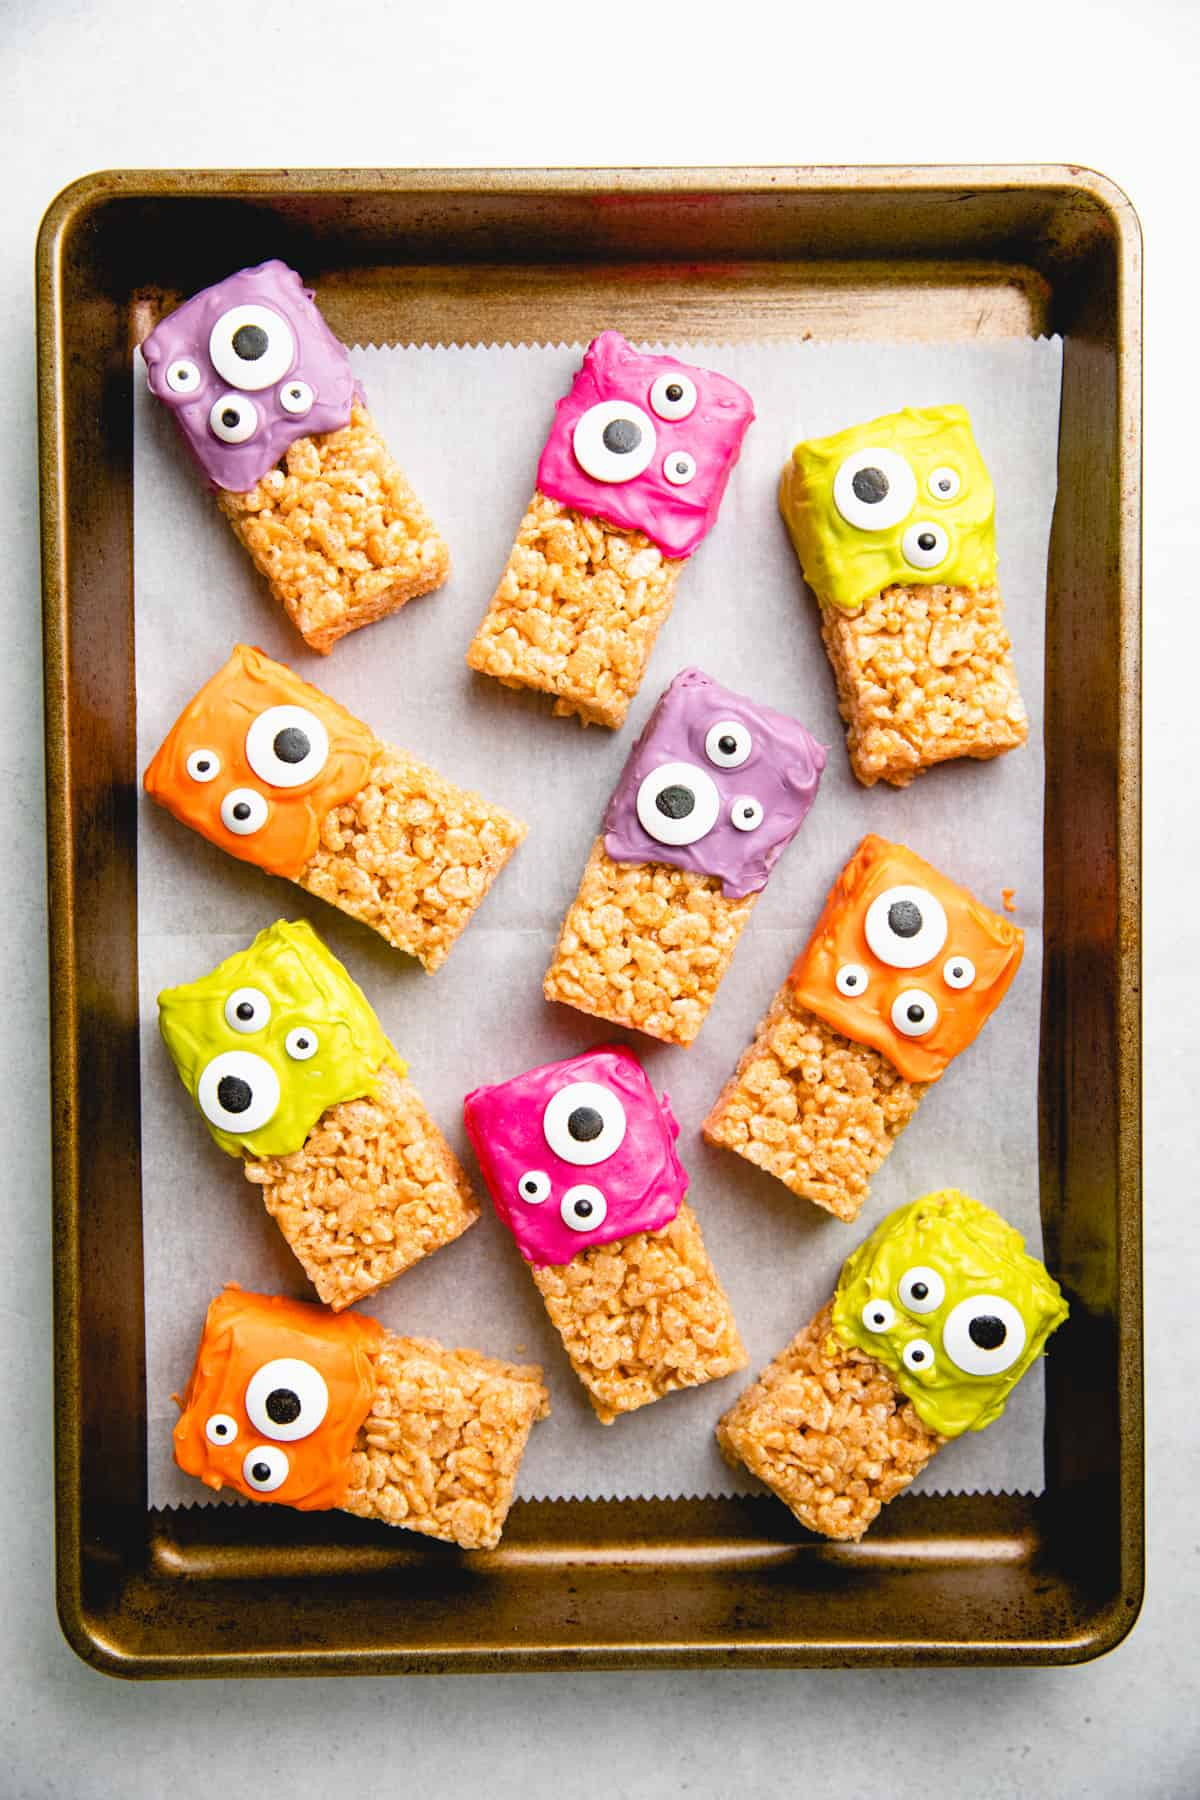 Halloween Rice Krispie Treats, topped with colored icing and candy eyes on baking sheet with parchment paper.